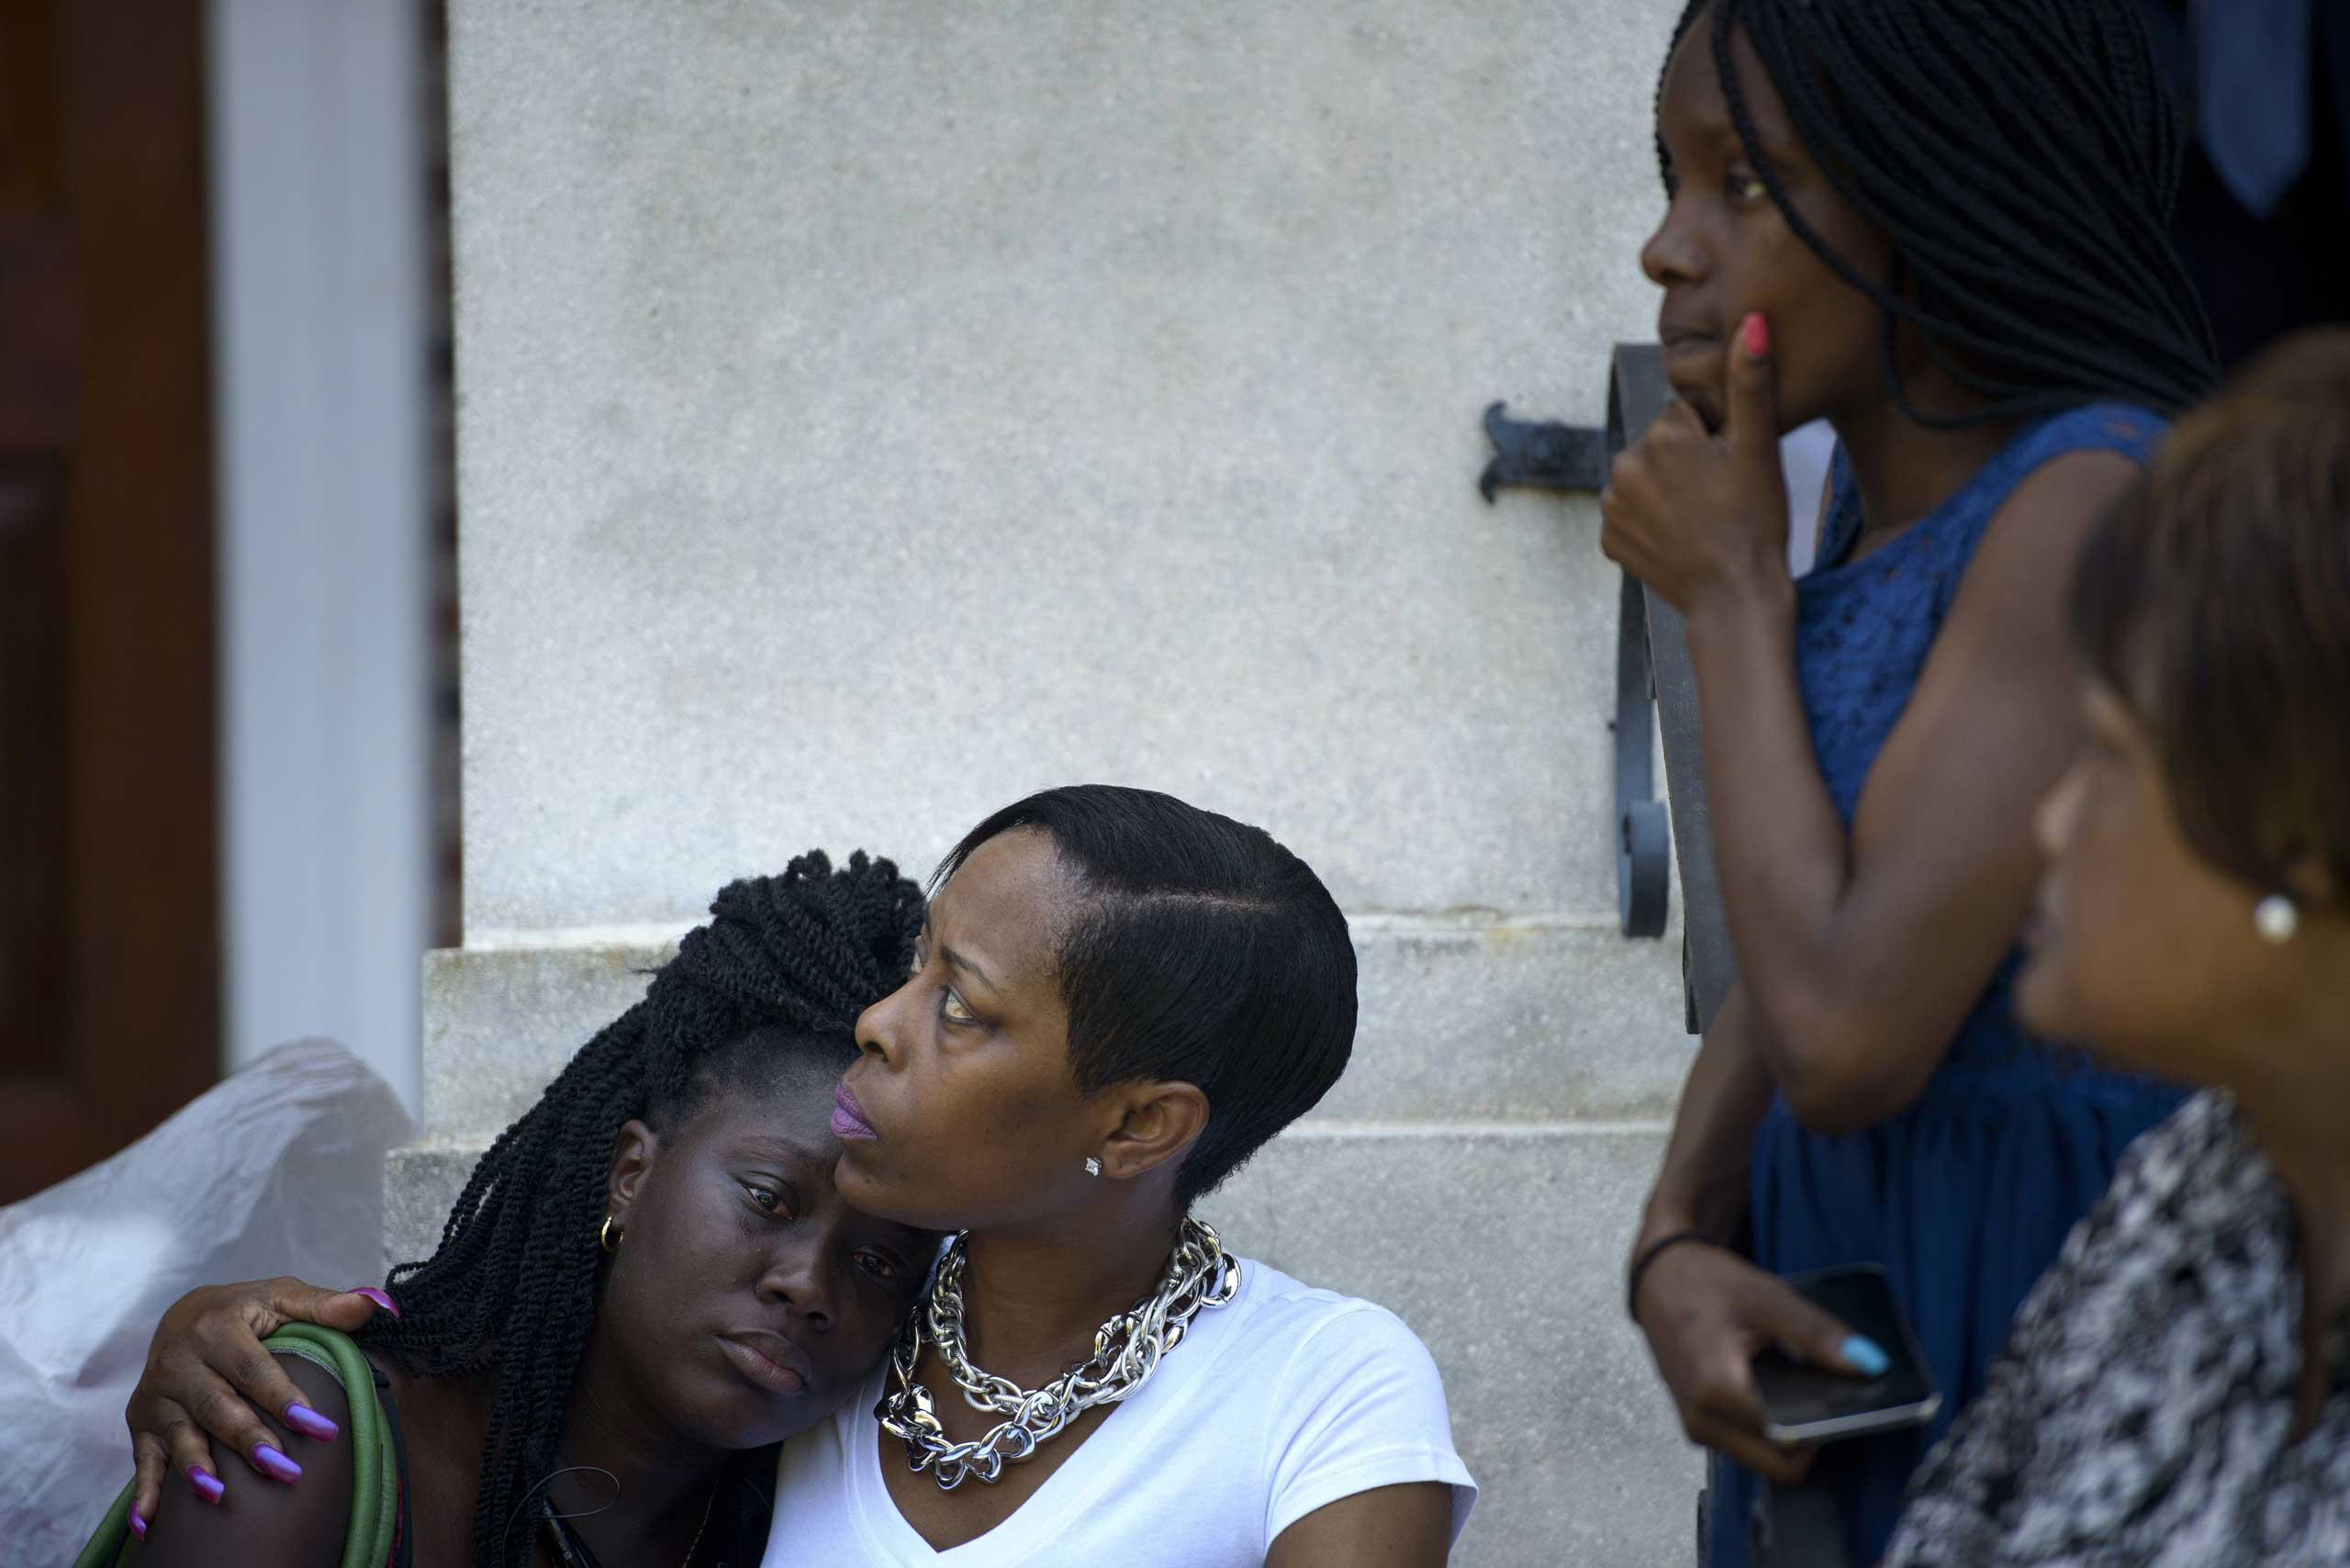 People sit on the steps of the Morris Brown AME Church while services are held one day after the church shooting in Charleston, S.C., on June 18, 2015.